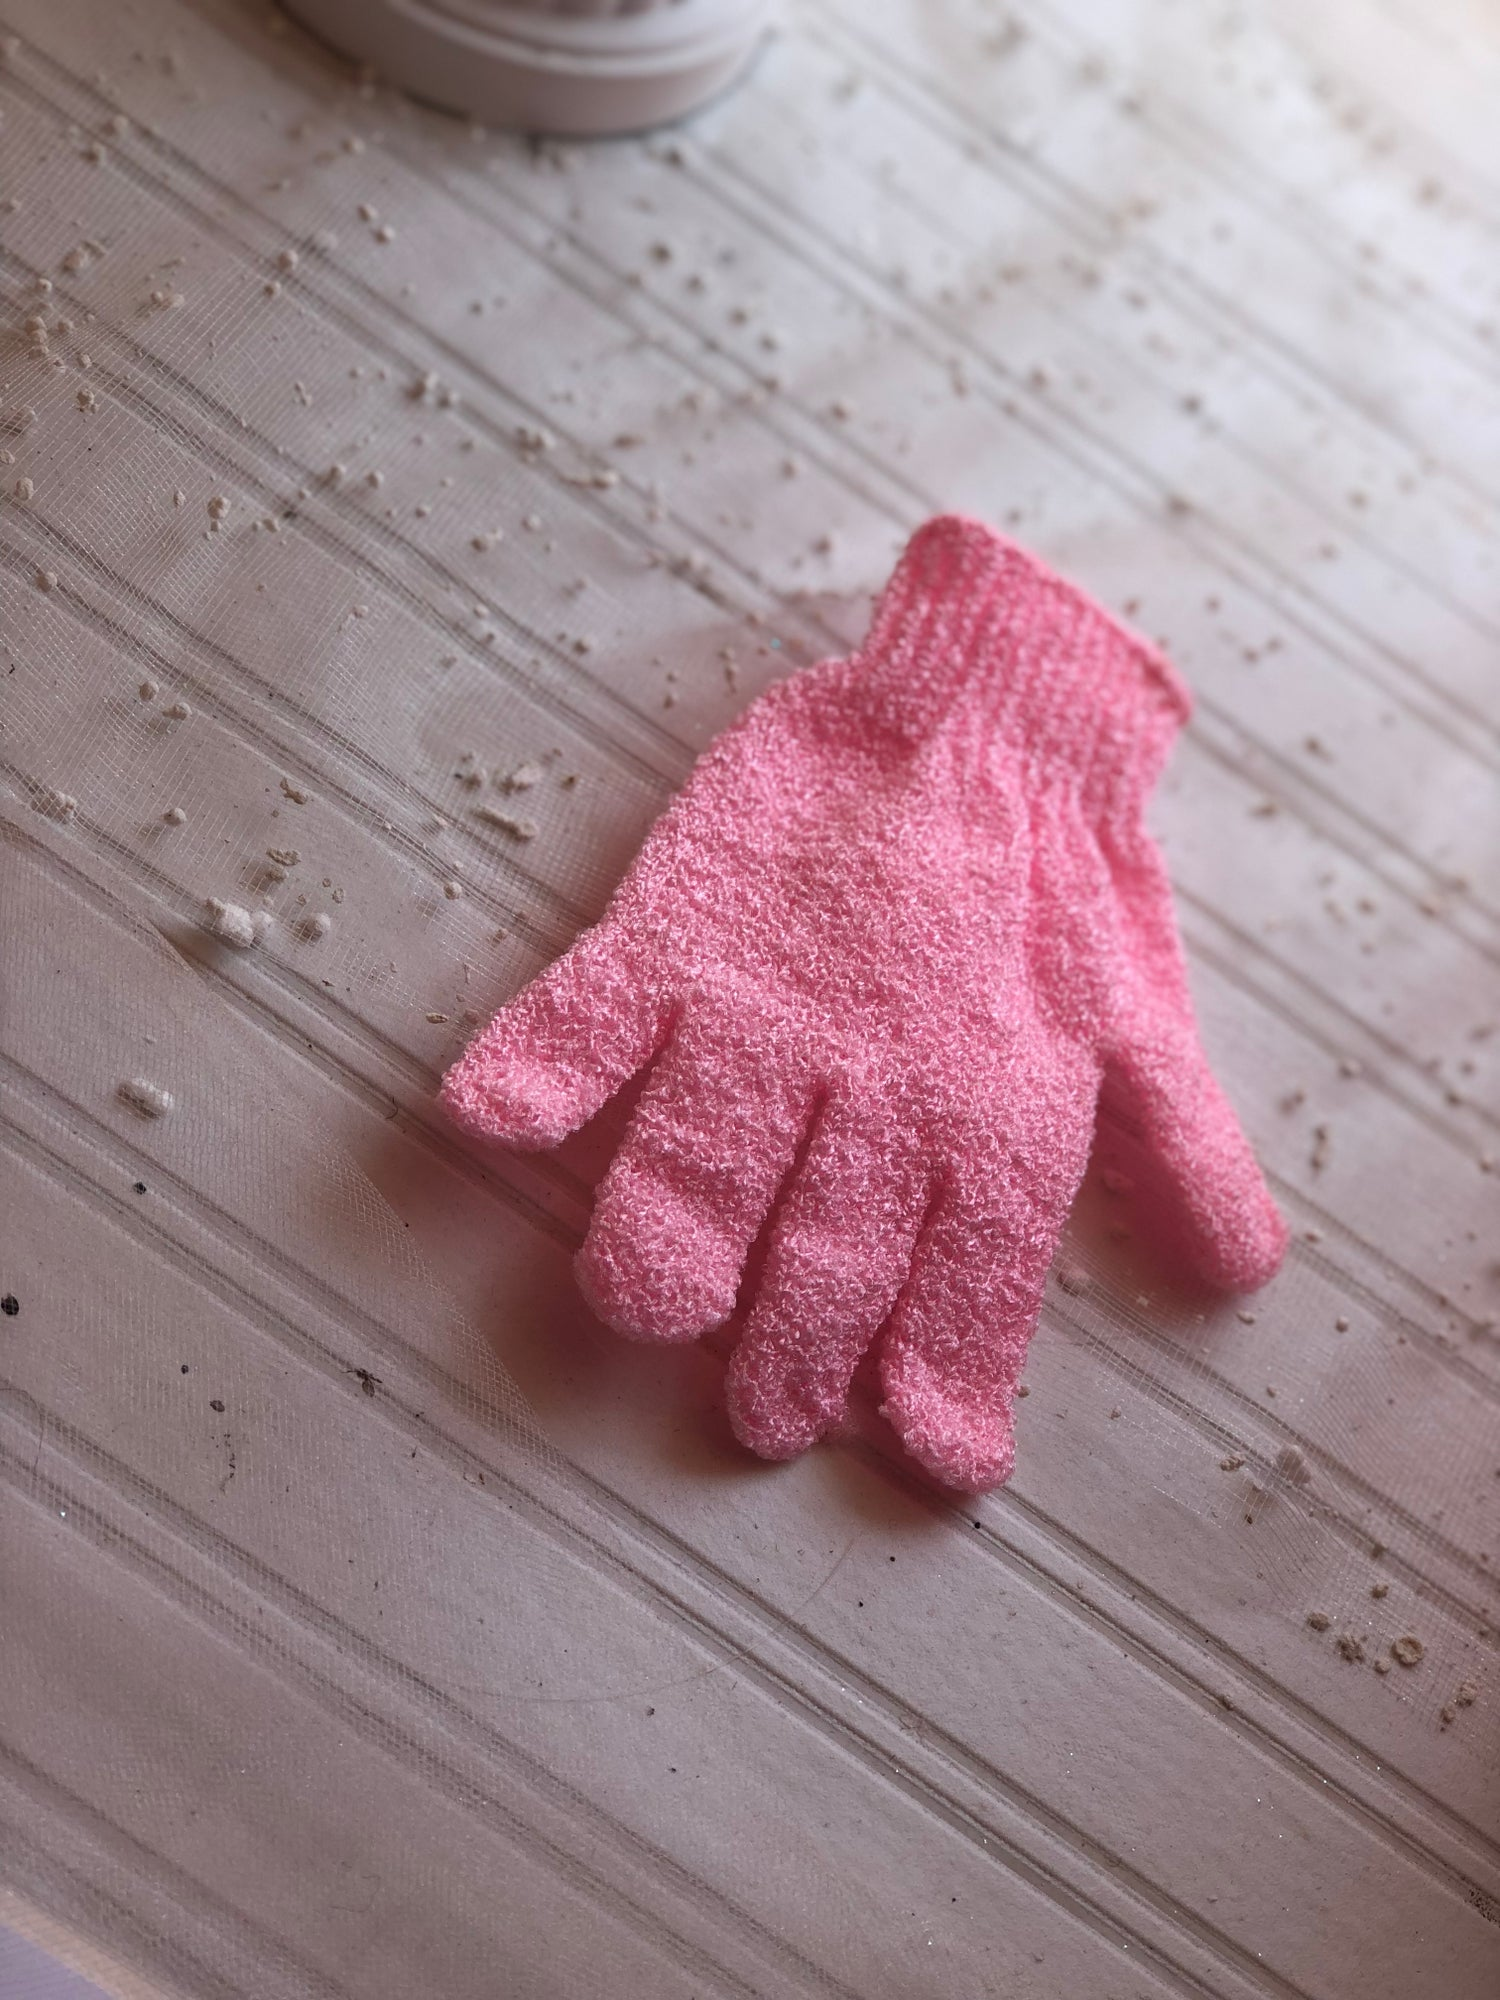 Image of Velvet Exfoliating Glove